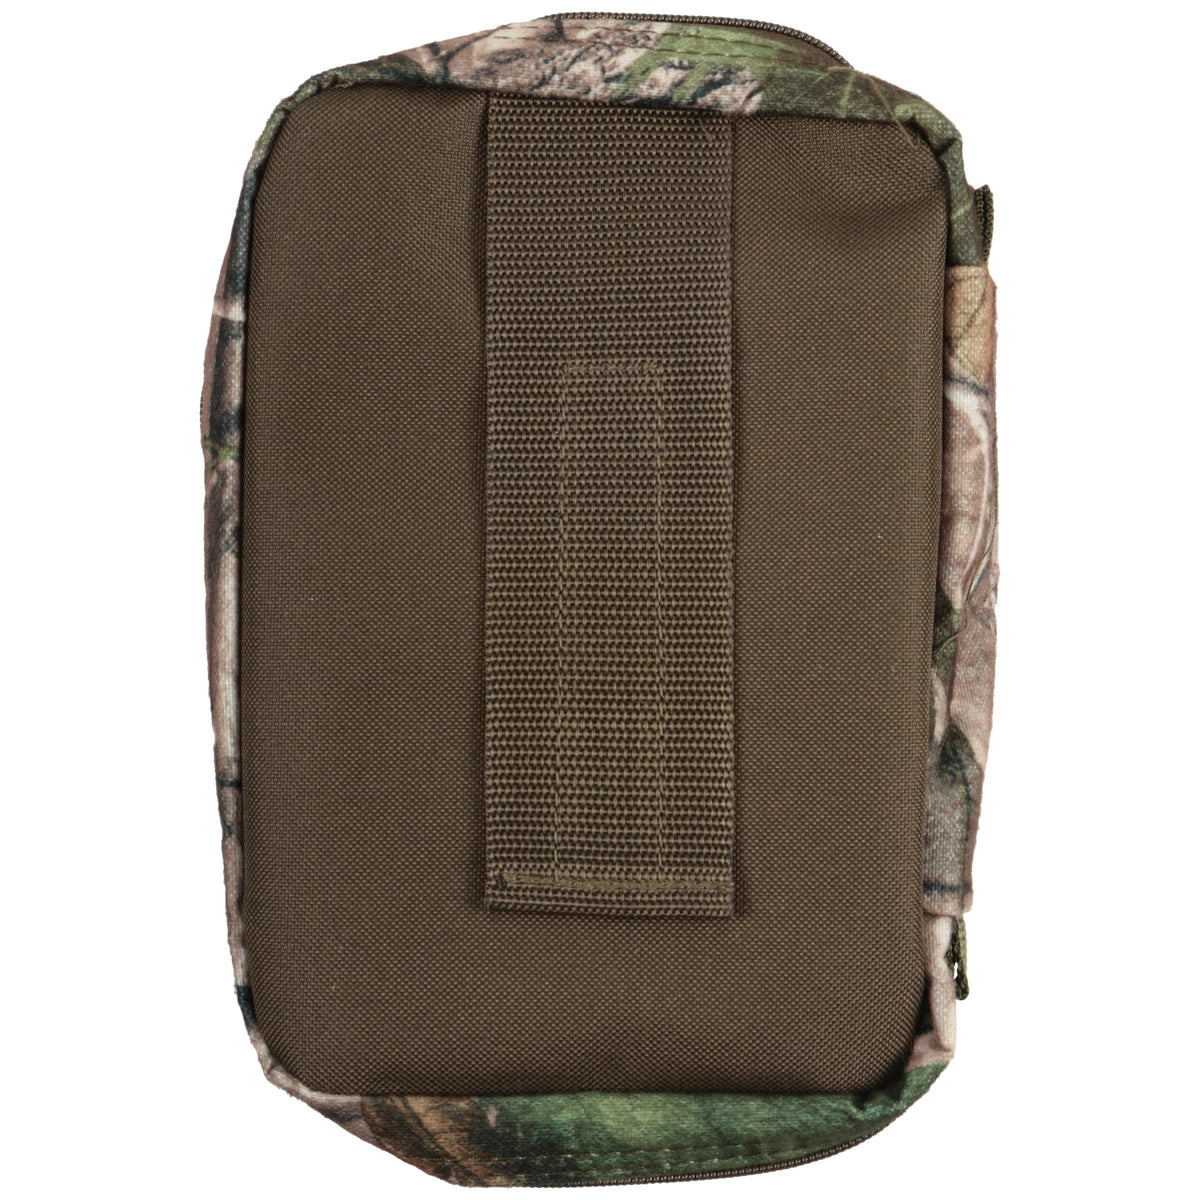 Hunters Specialties HS Strut Pouch Front Back